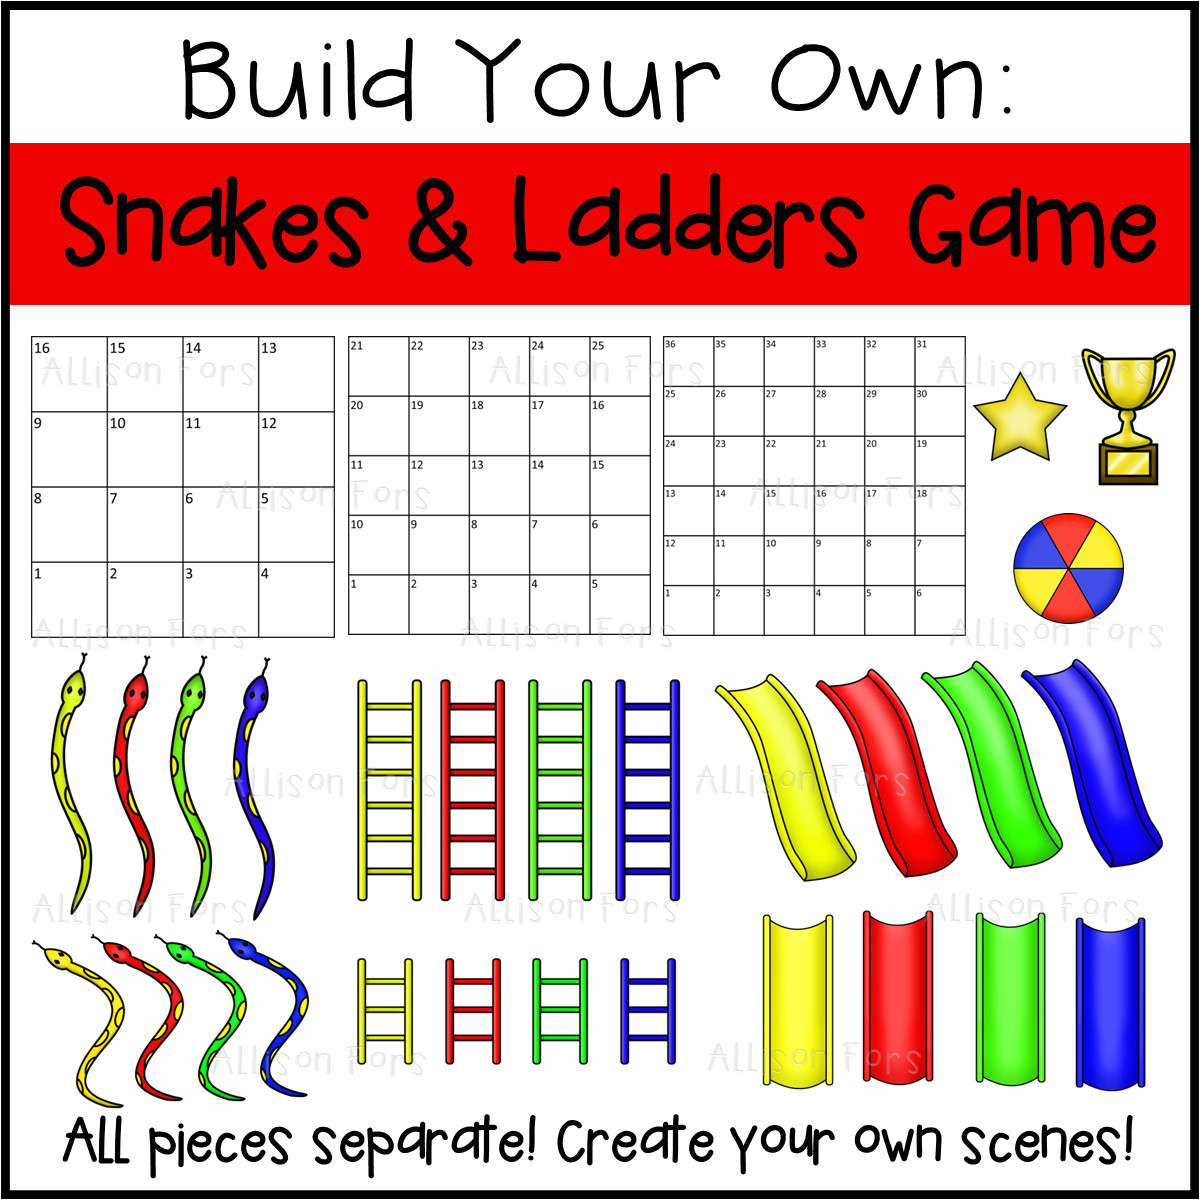 build your own snakes ladders